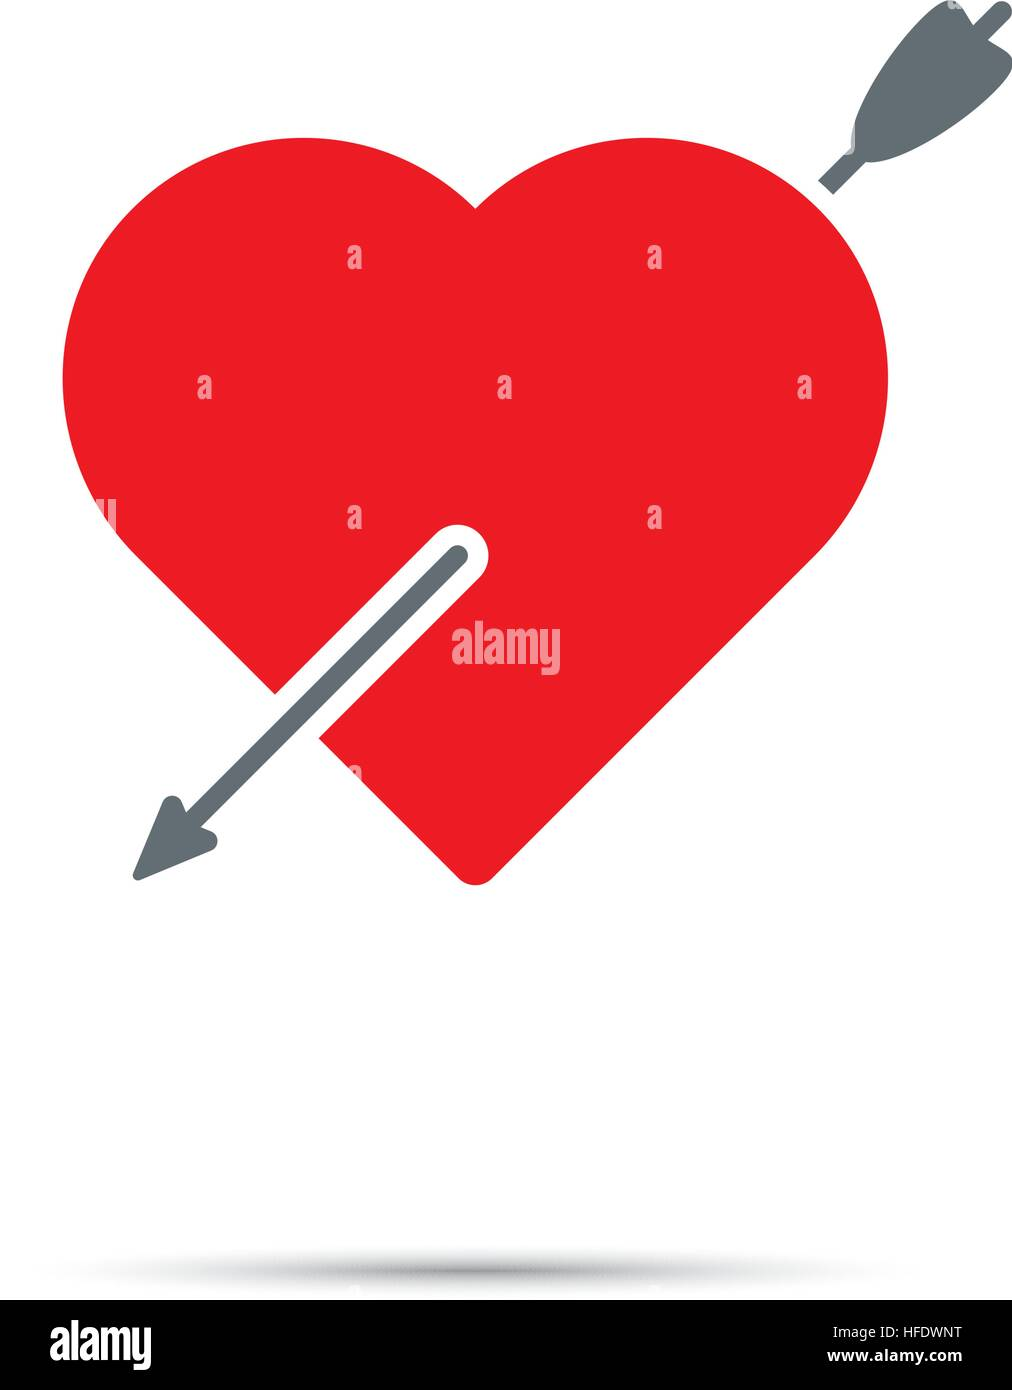 Heart Pierced By Arrow Icon For Valentines Day Cupid S Arrow